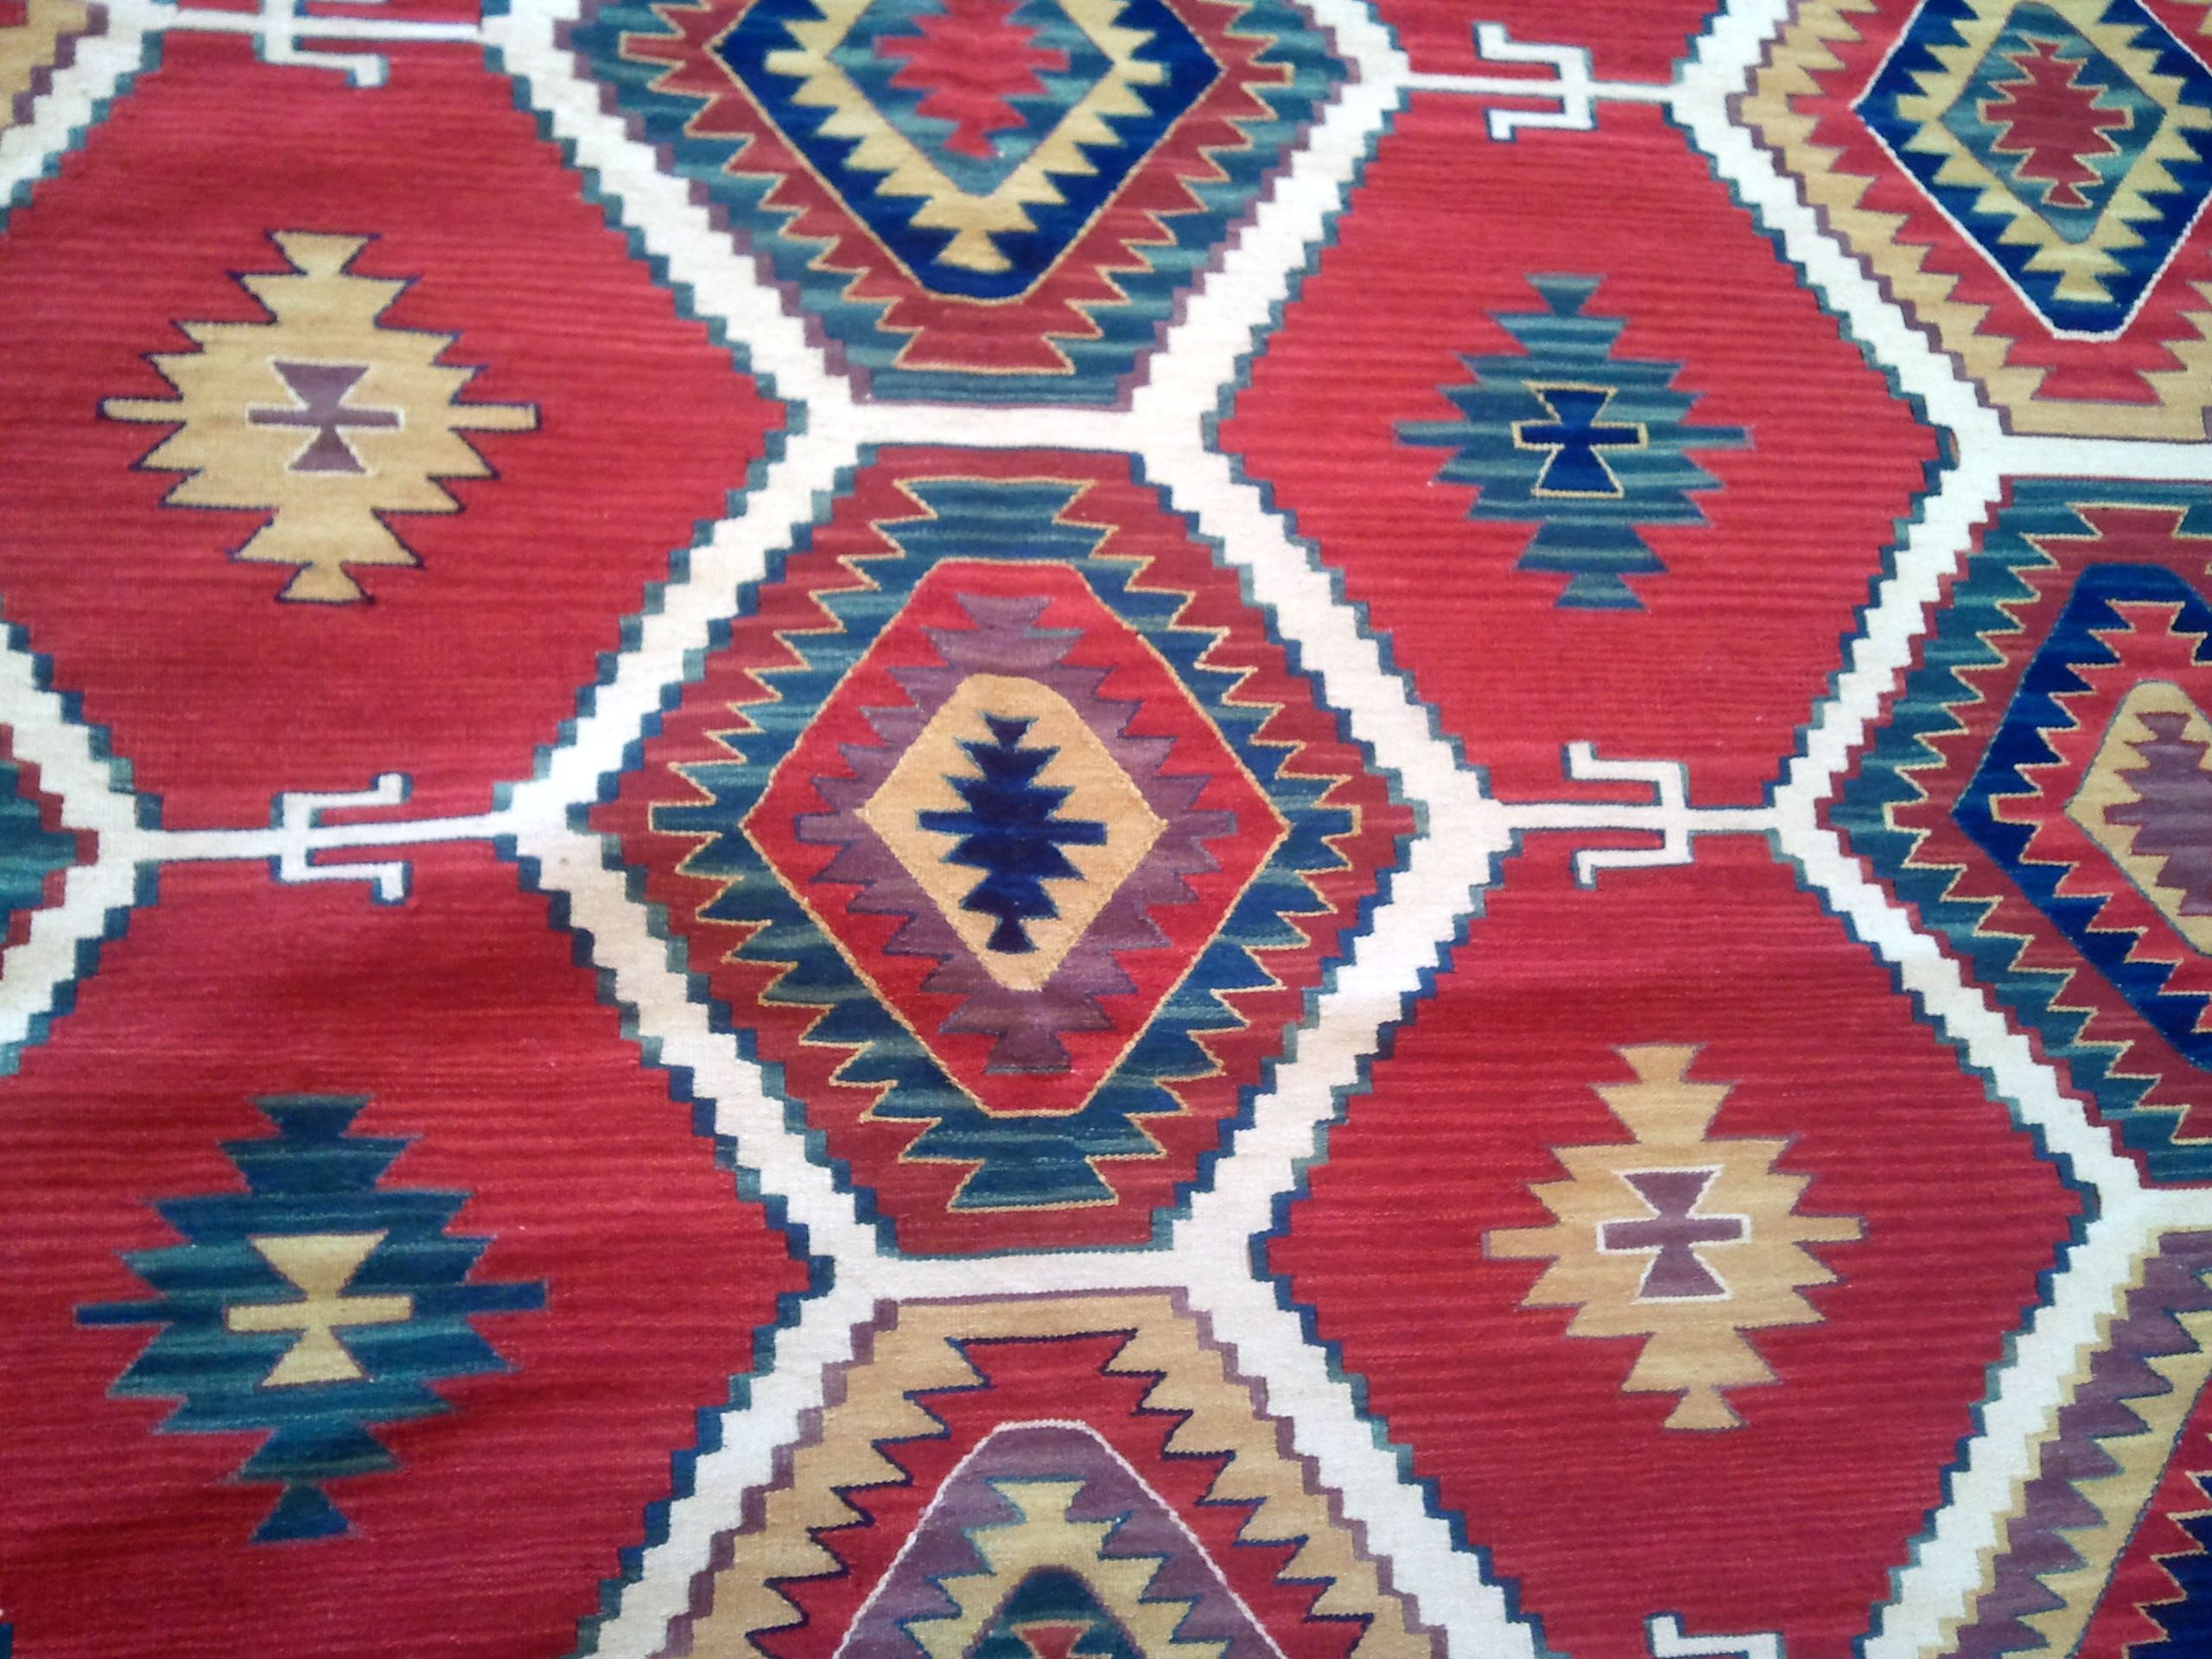 Captivating Vibrant Kilim, Red And Blue Flatweave Rug 8x10 Pictures Gallery